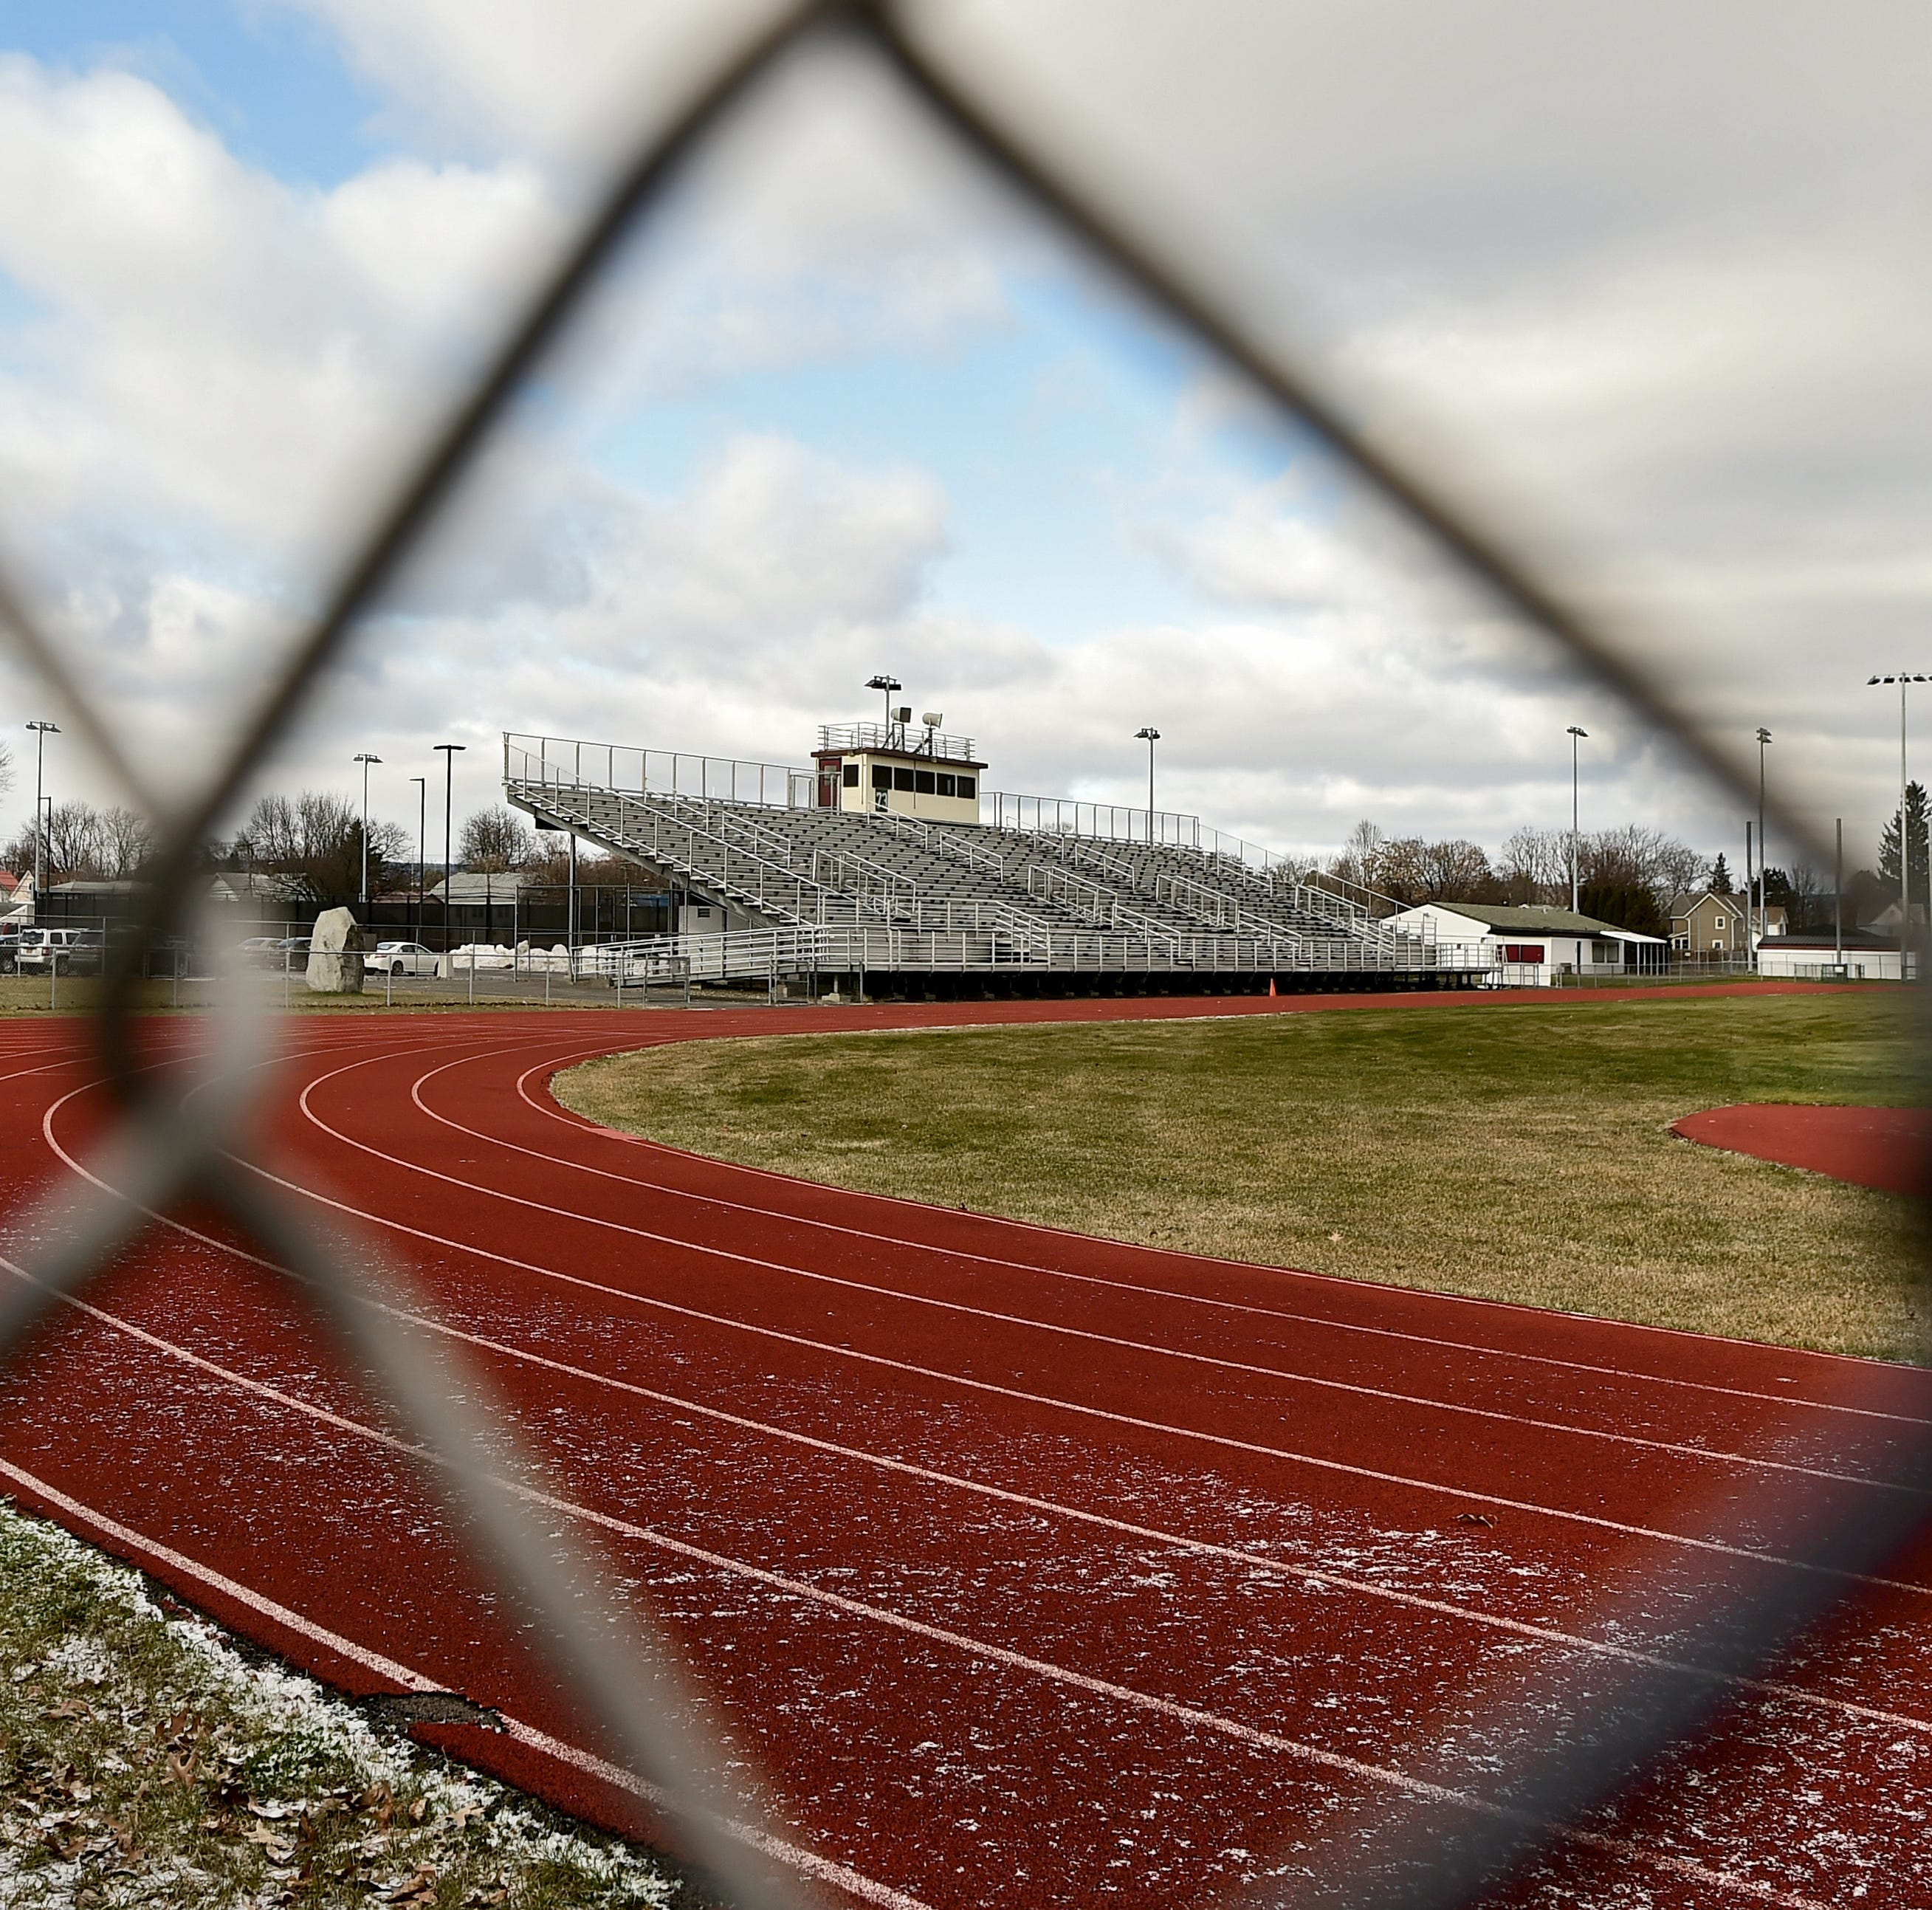 Toxic time bomb: Elmira High School pollution an urgent problem among NY's cleanups